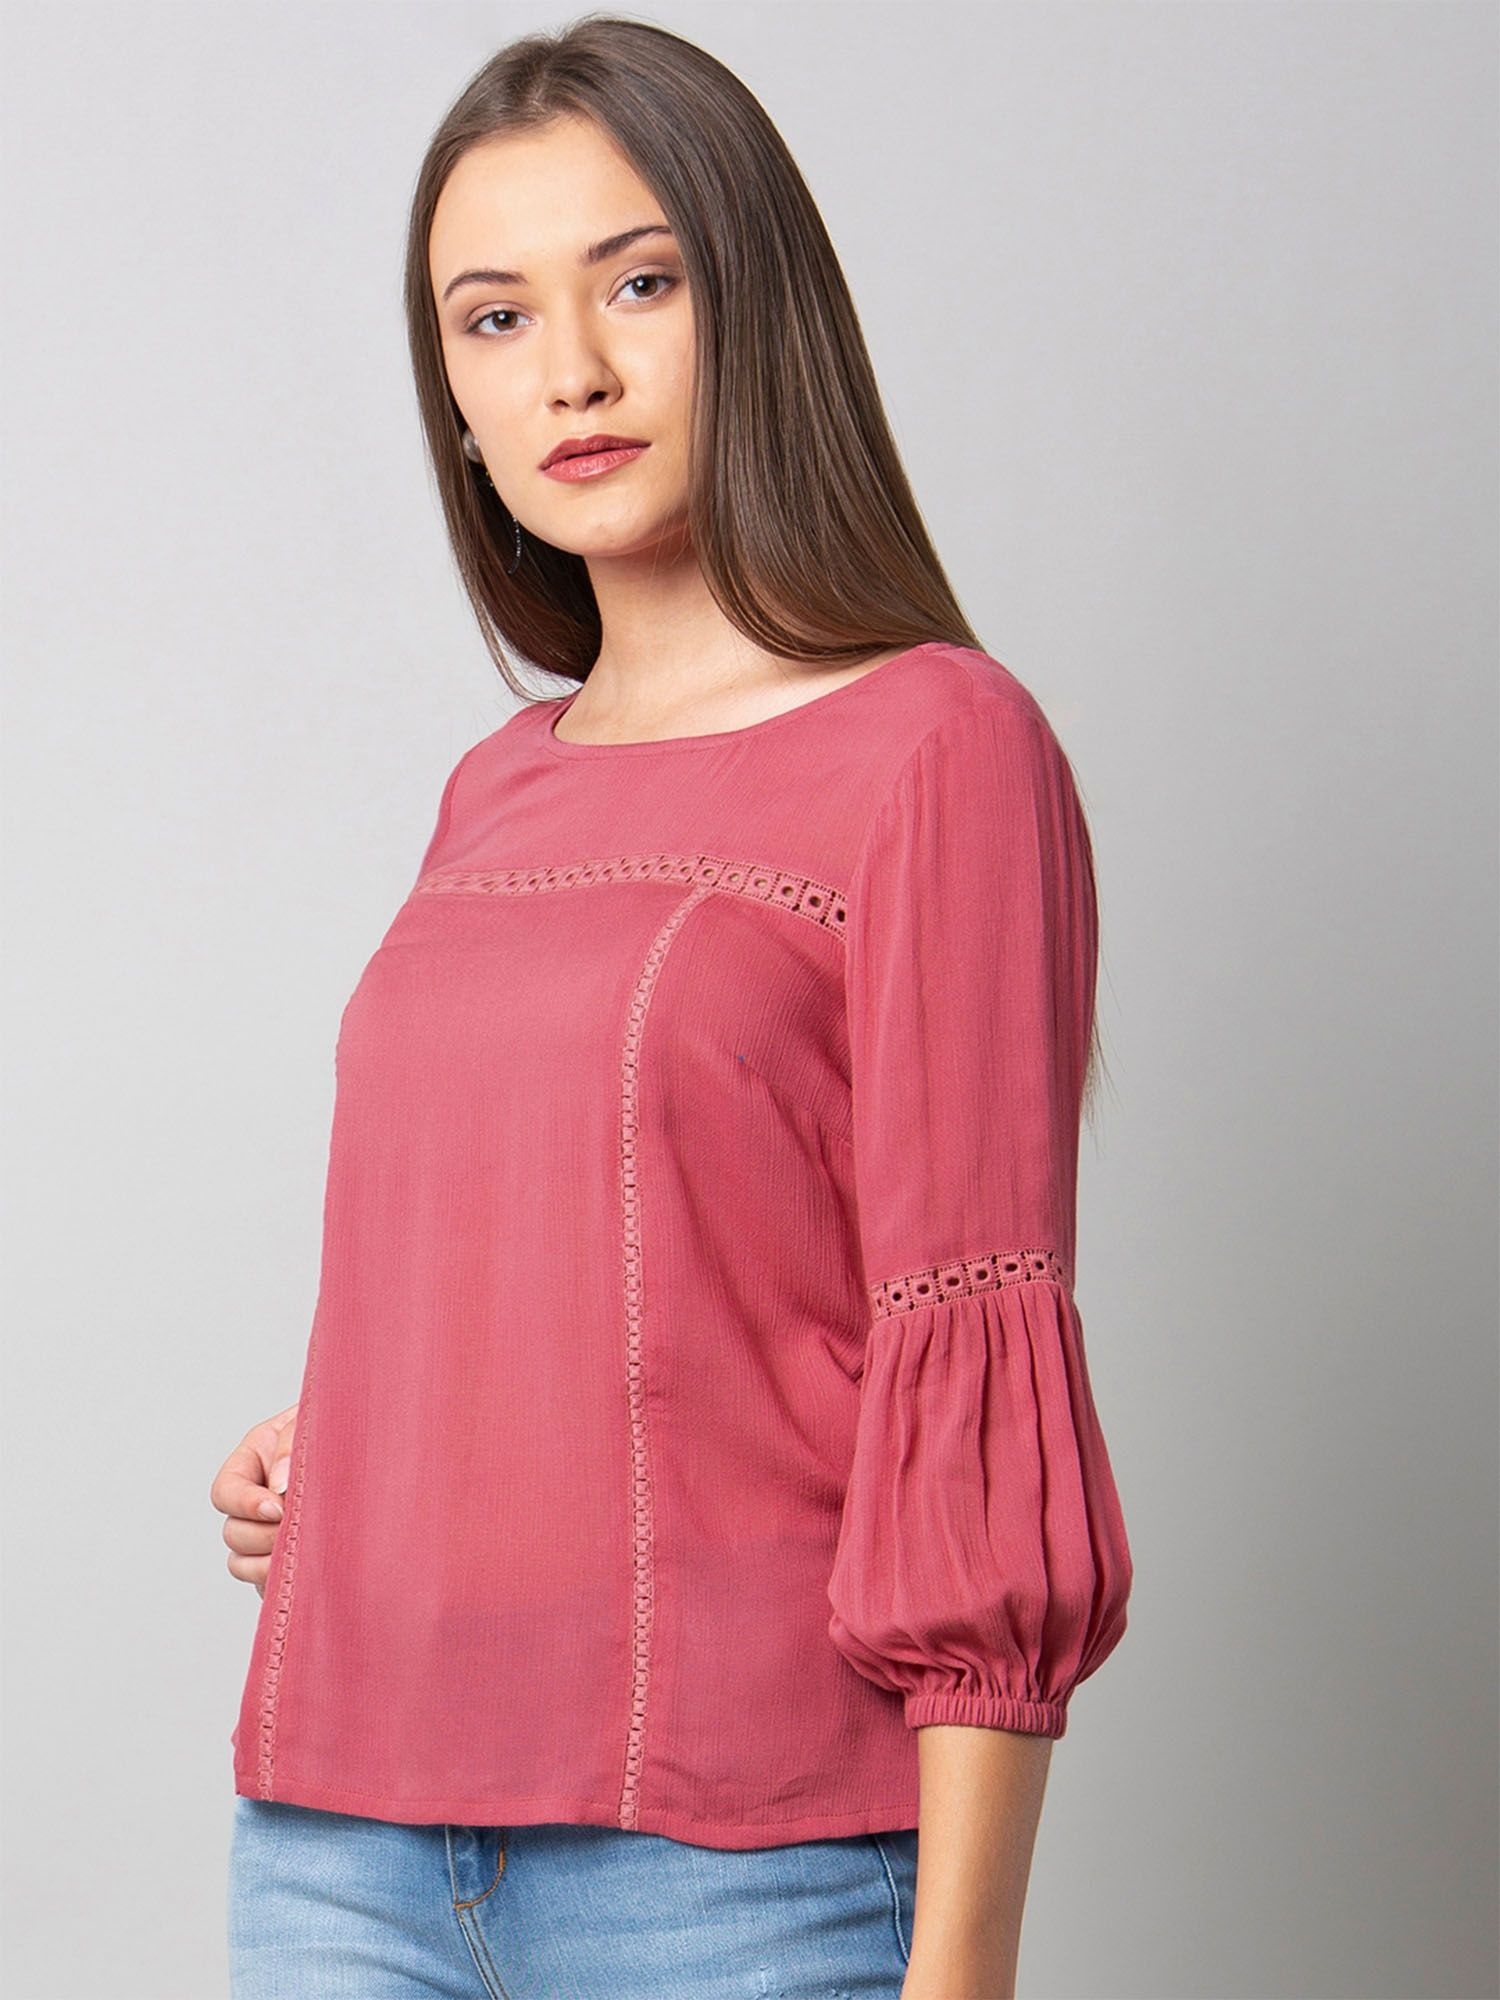 4d49ae9126b Faballey Shirts Tops and Crop Tops   Buy Faballey Pink Lace Insert ...